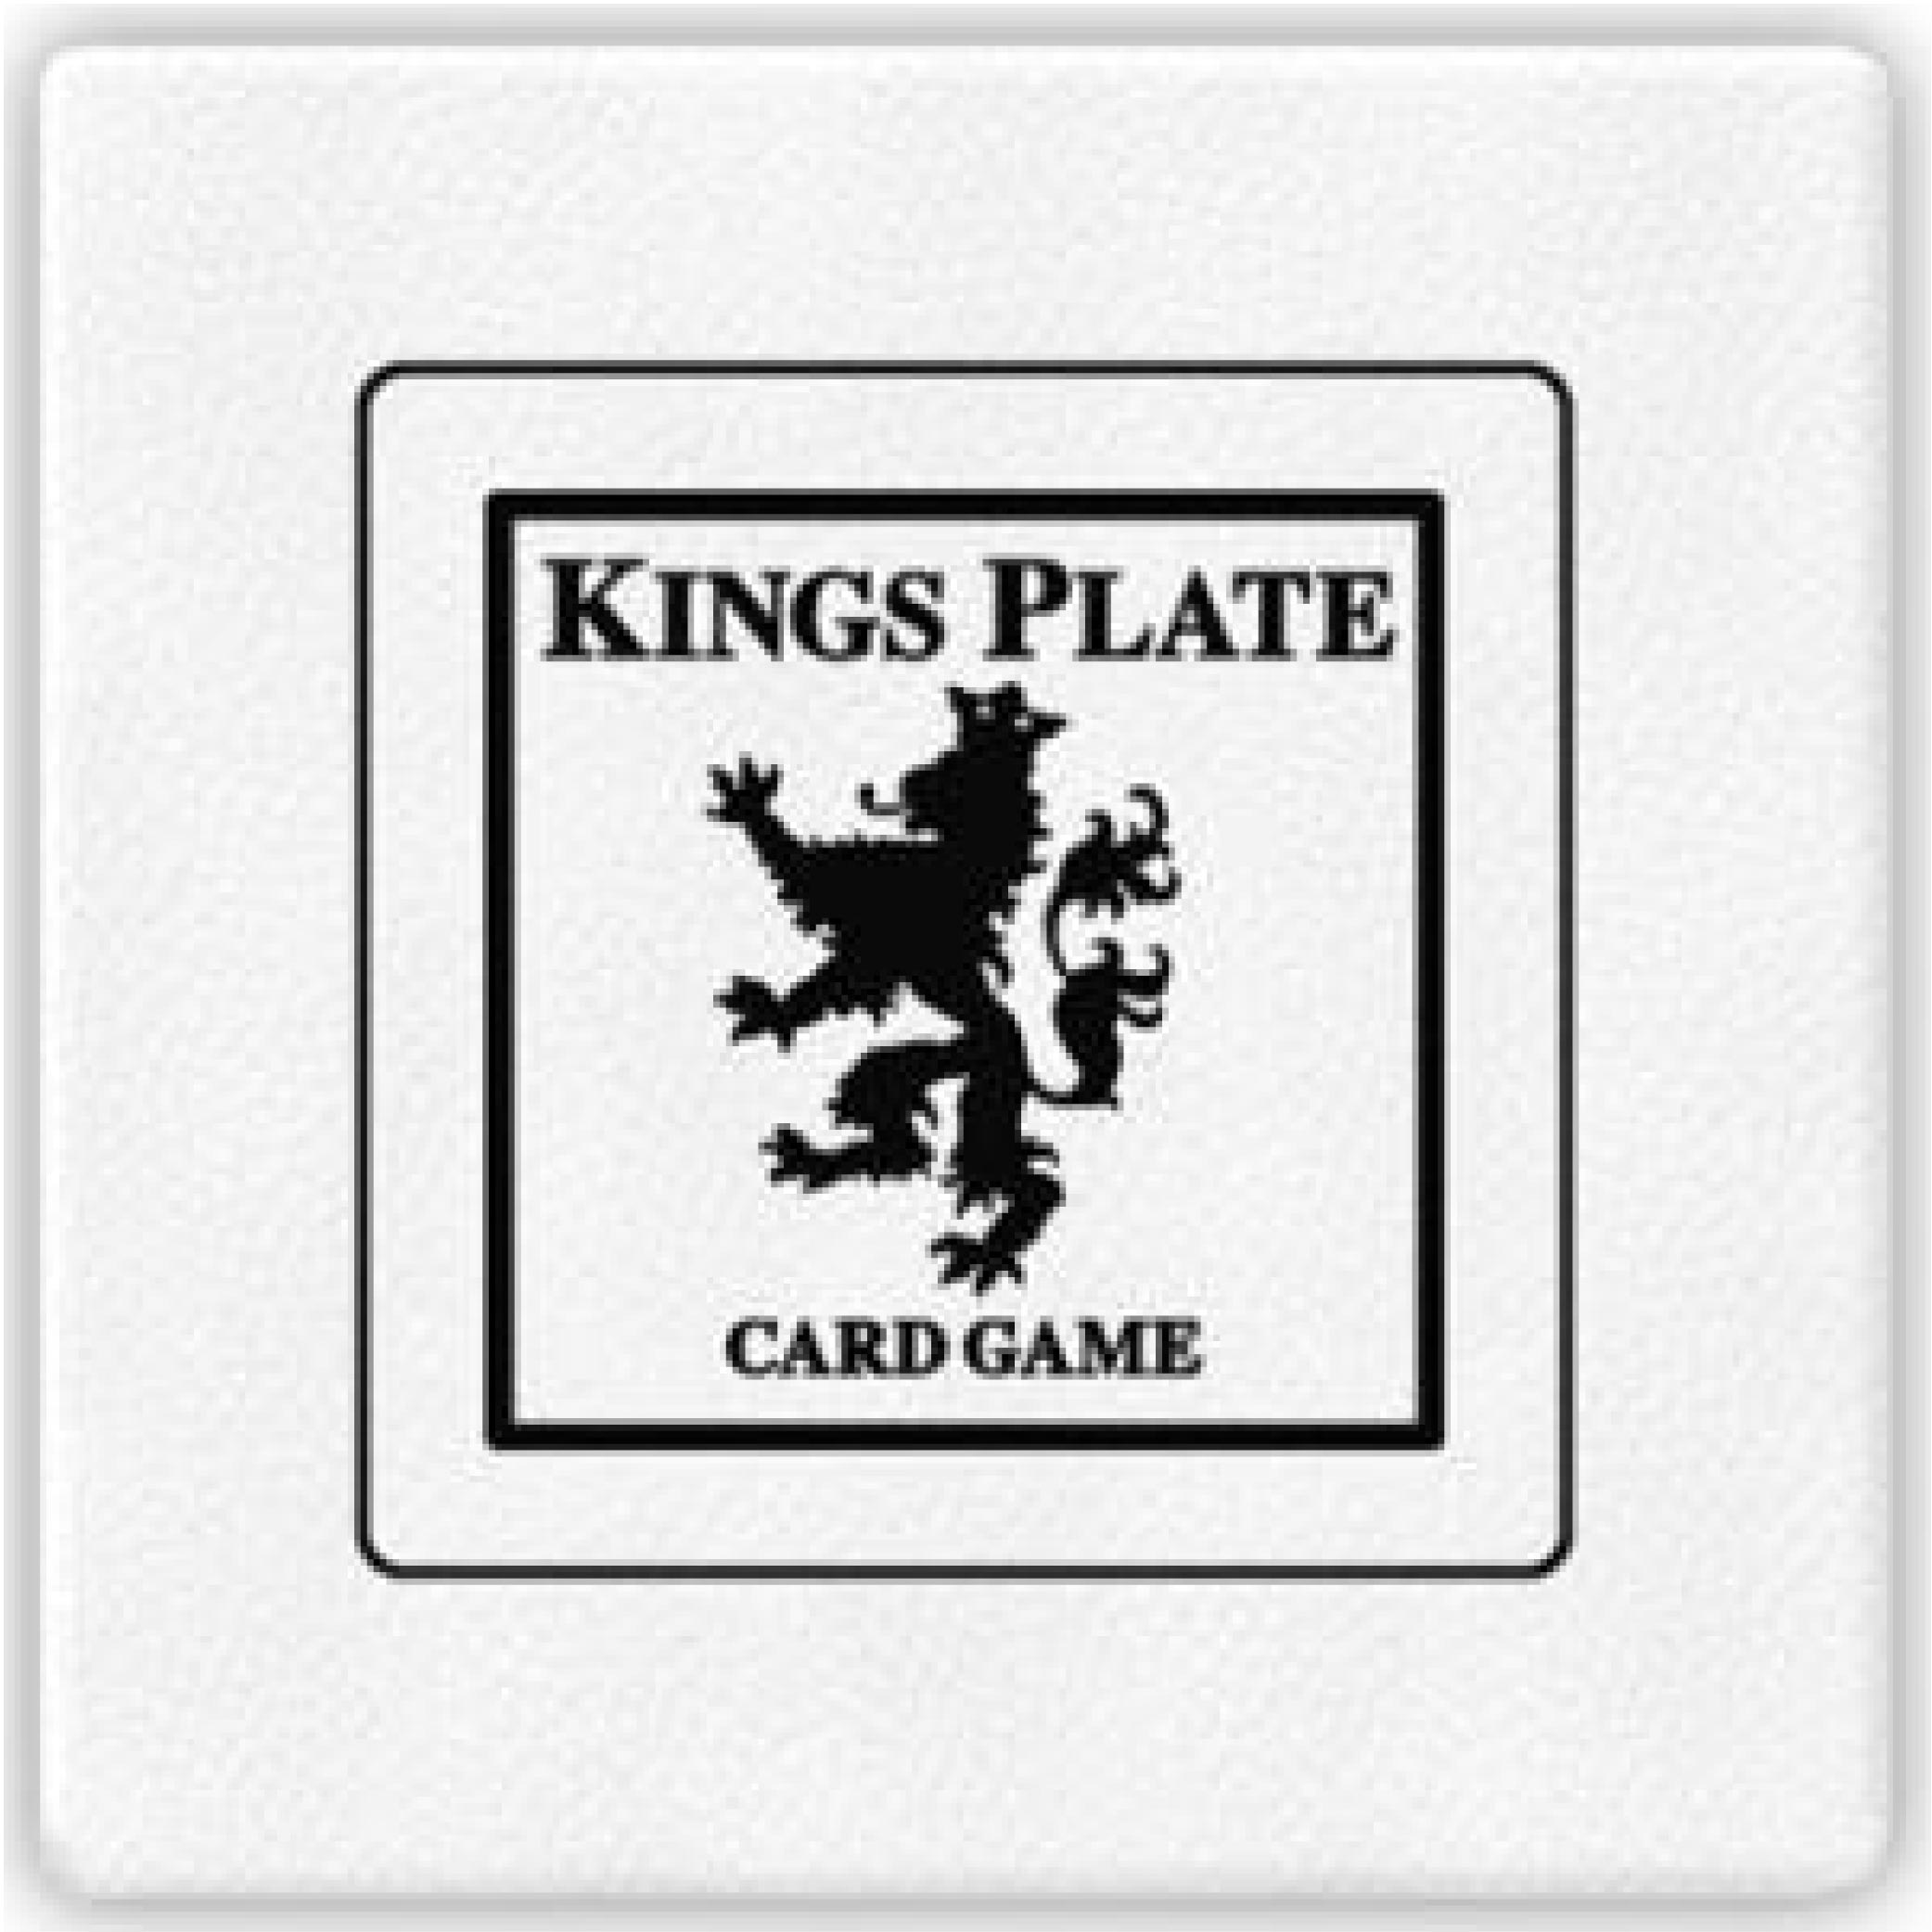 Kings_Plate__Car_50c2062edb616.jpg